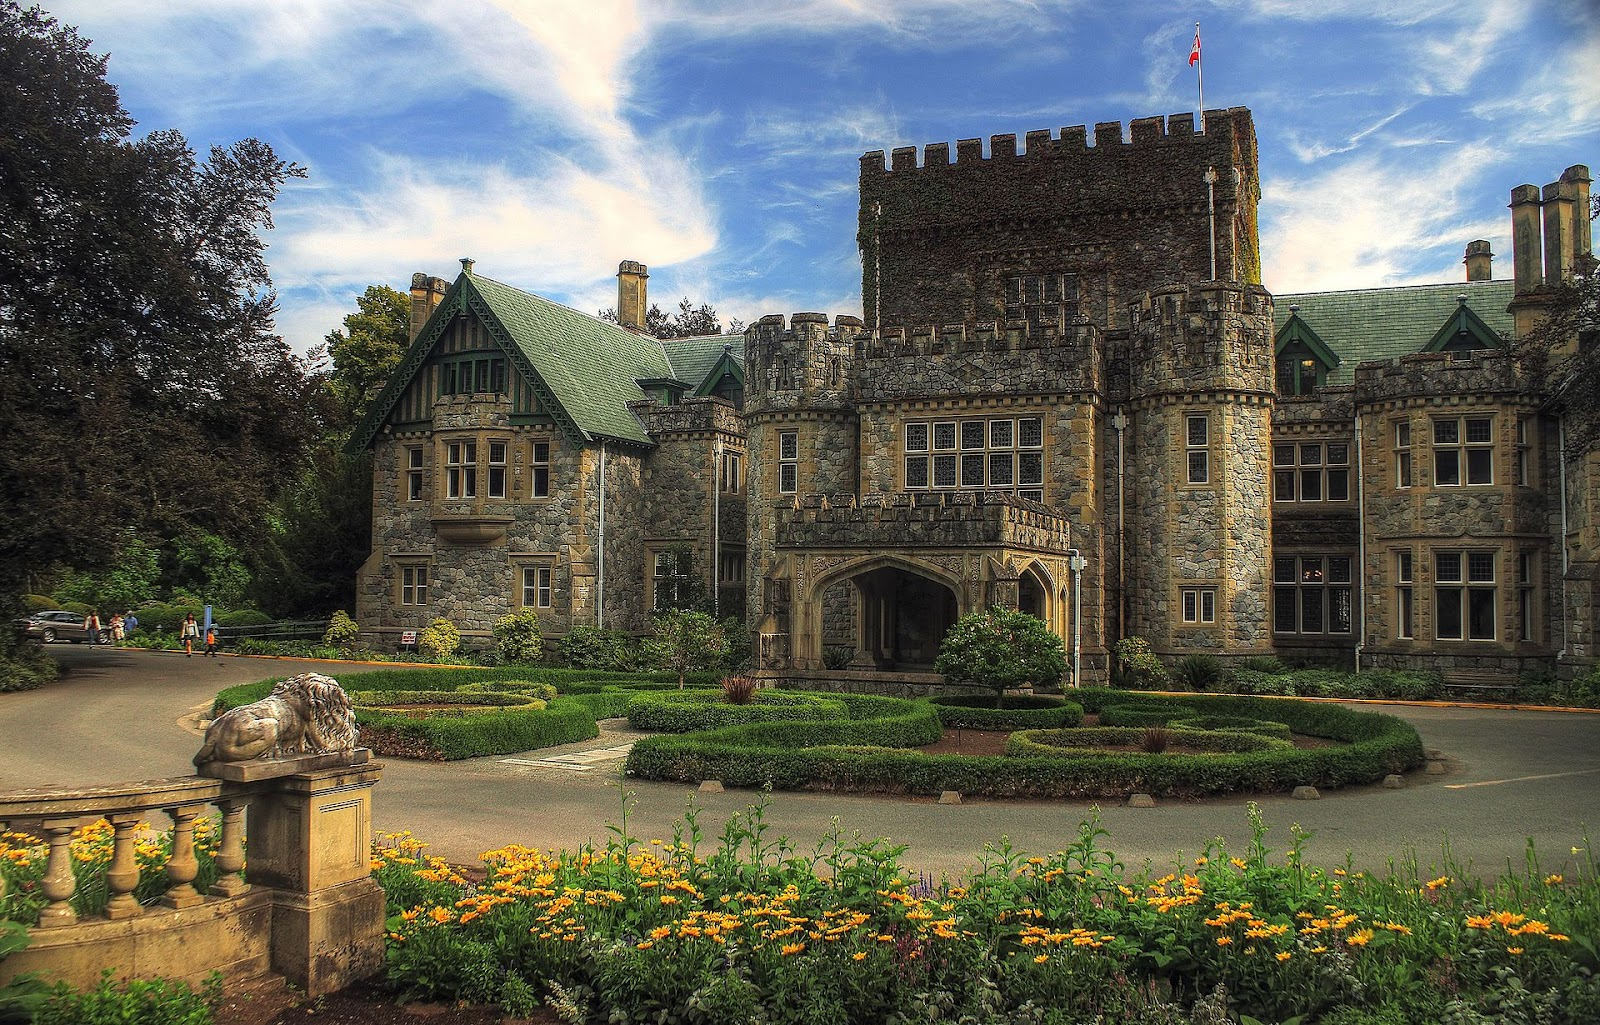 Hatley Castle, Royal Roads University, X-Mansion in the X-Men films.